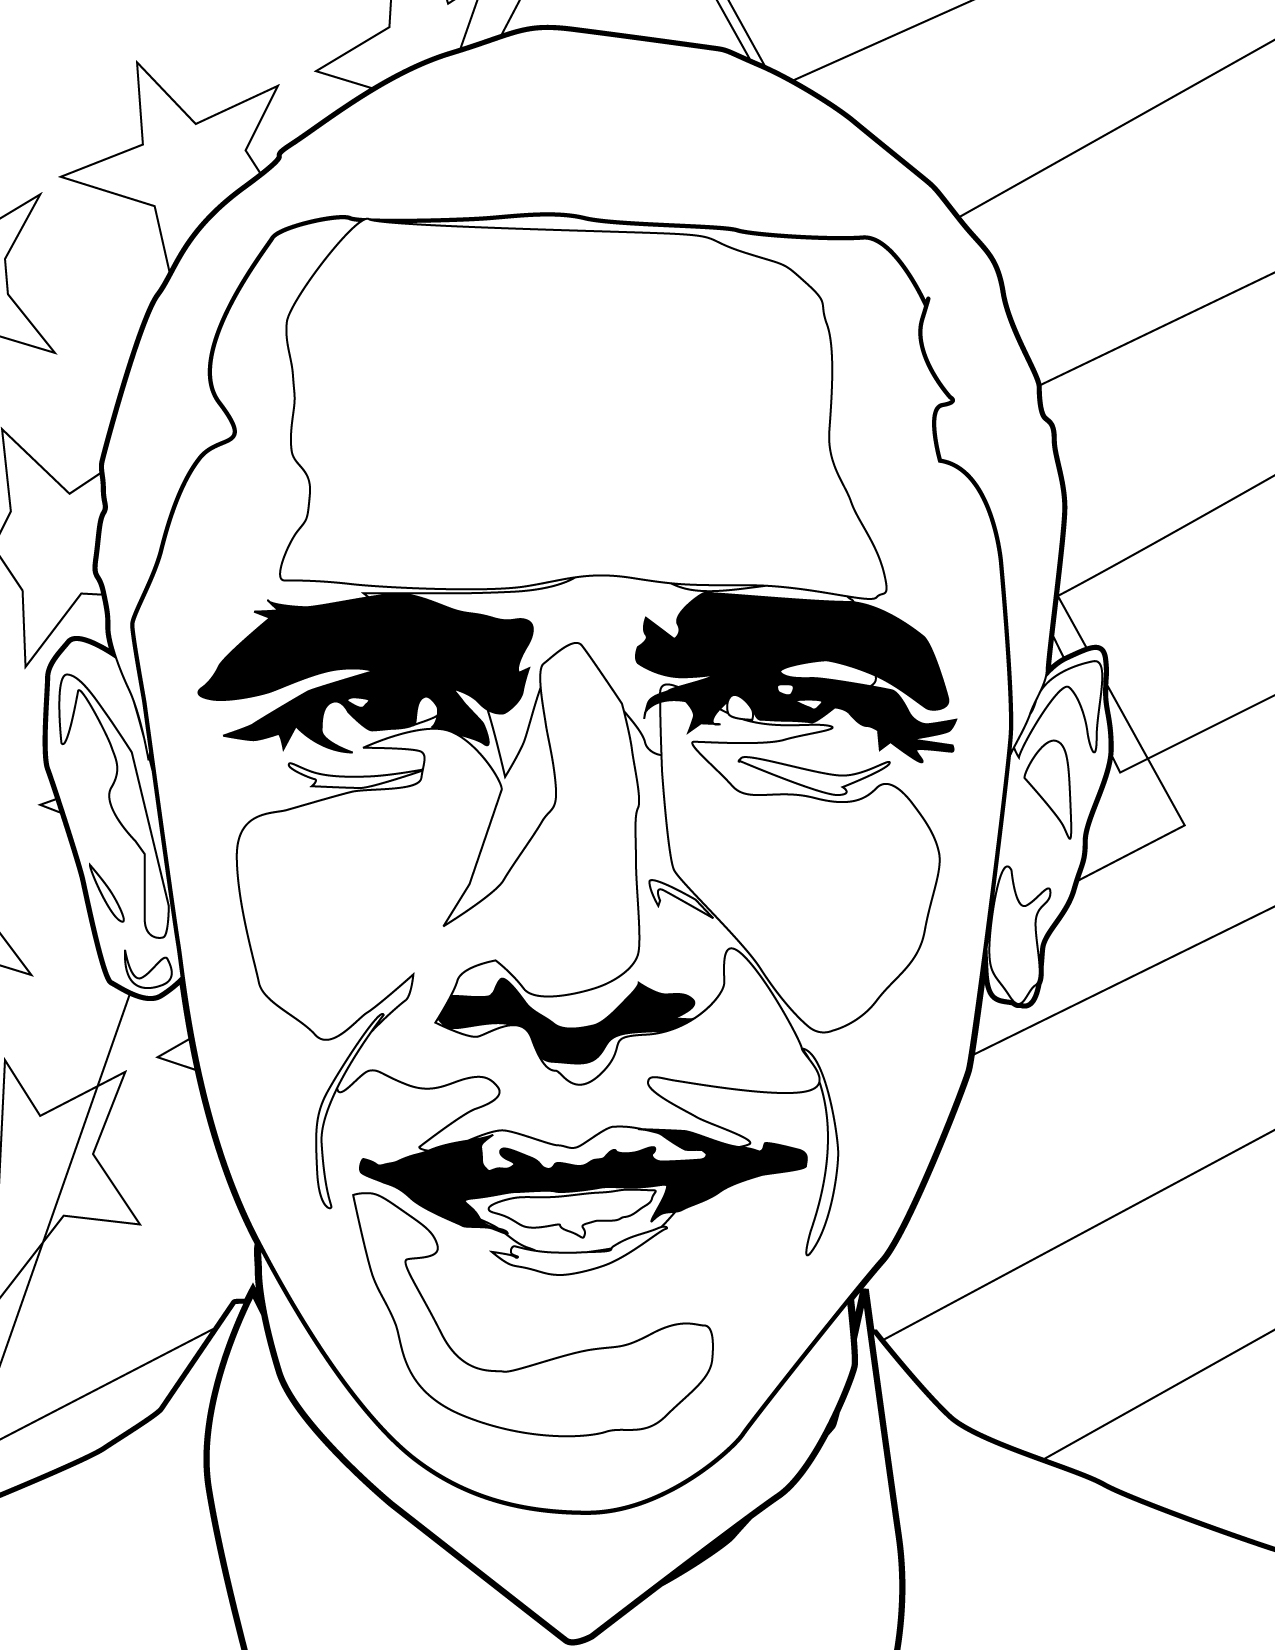 Barack Obama Drawing at GetDrawings.com | Free for personal use ...